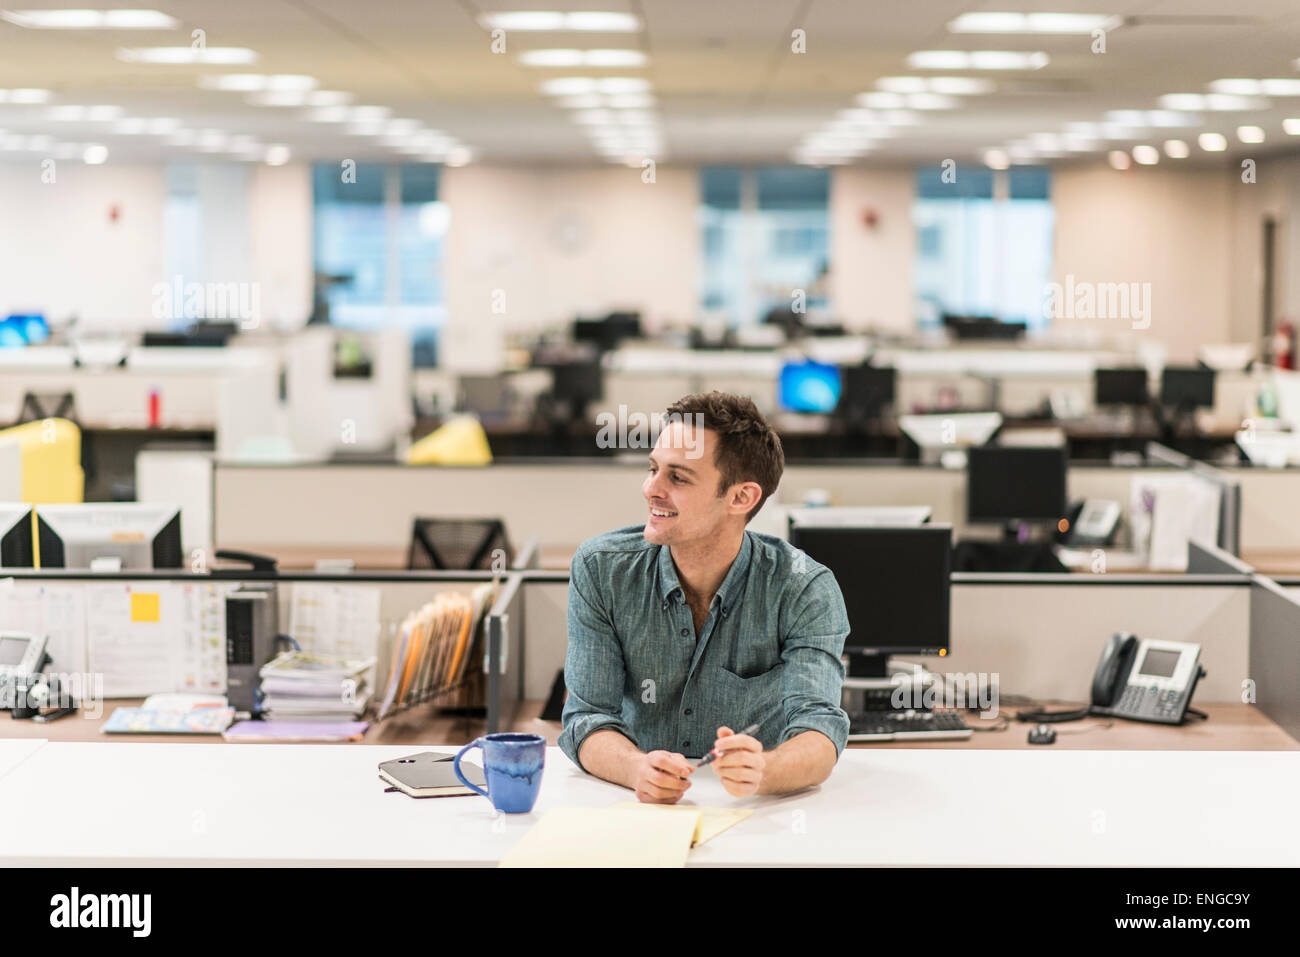 A young man seated at a desk in an office. - Stock Image